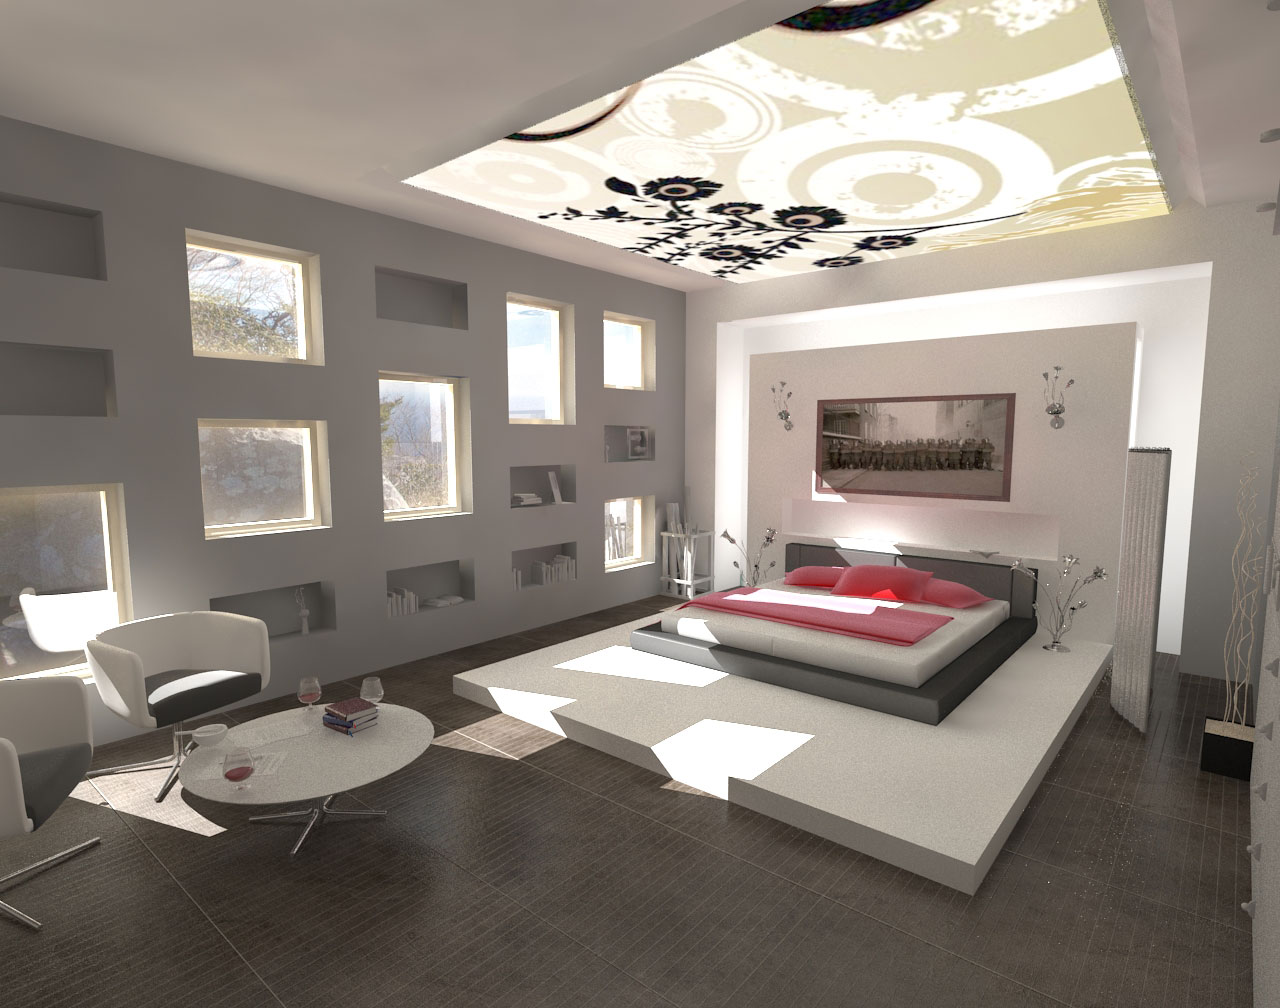 Decorations minimalist design modern bedroom interior for Bedroom interior design